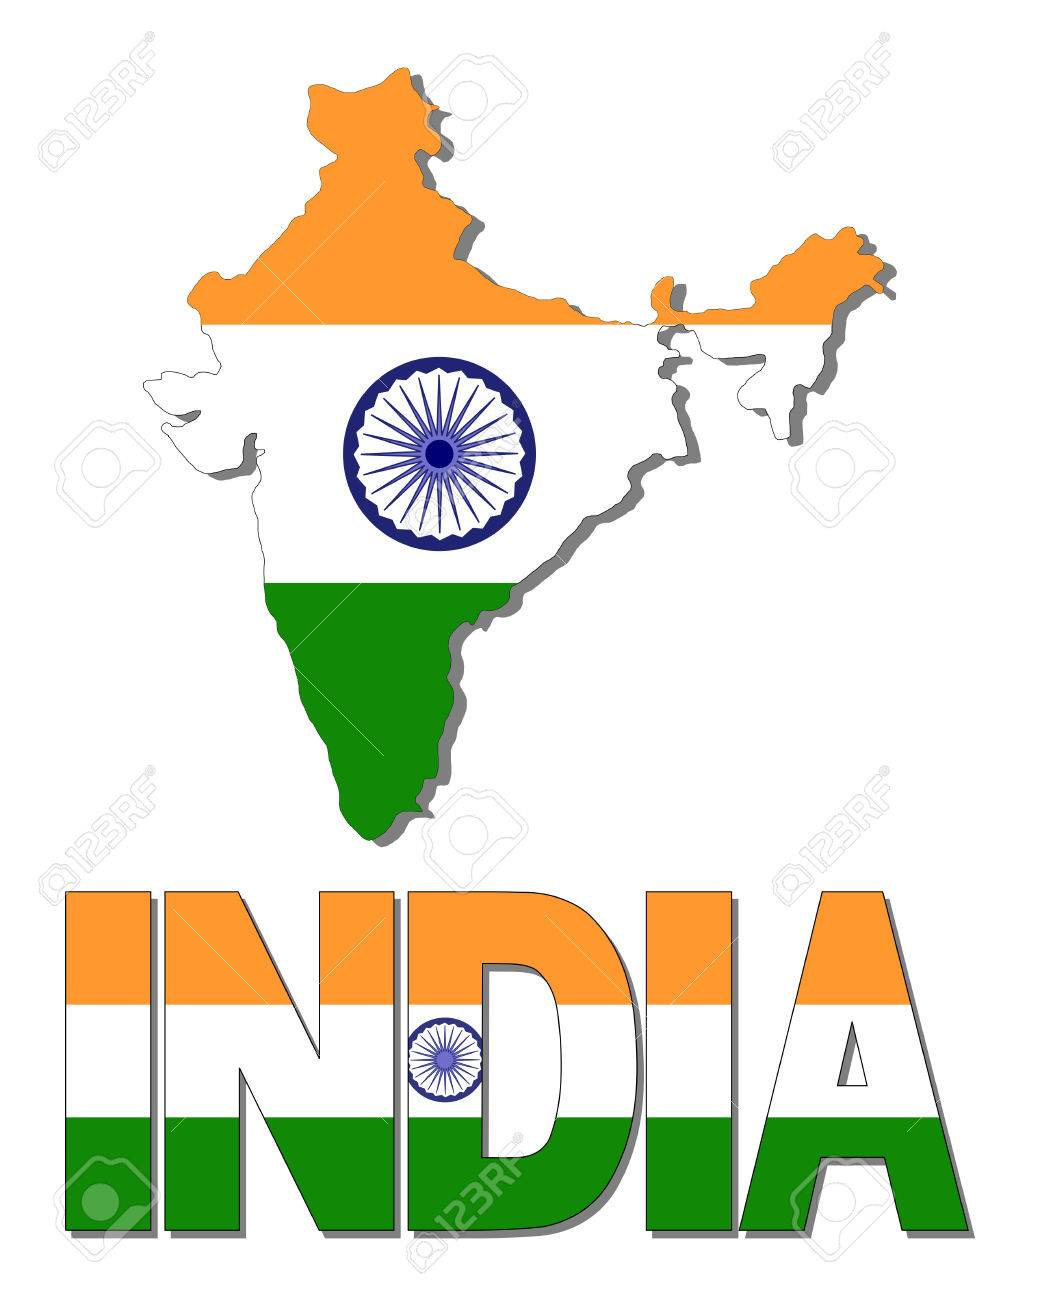 India Map Flag.India Map Flag And Text Illustration Stock Photo Picture And